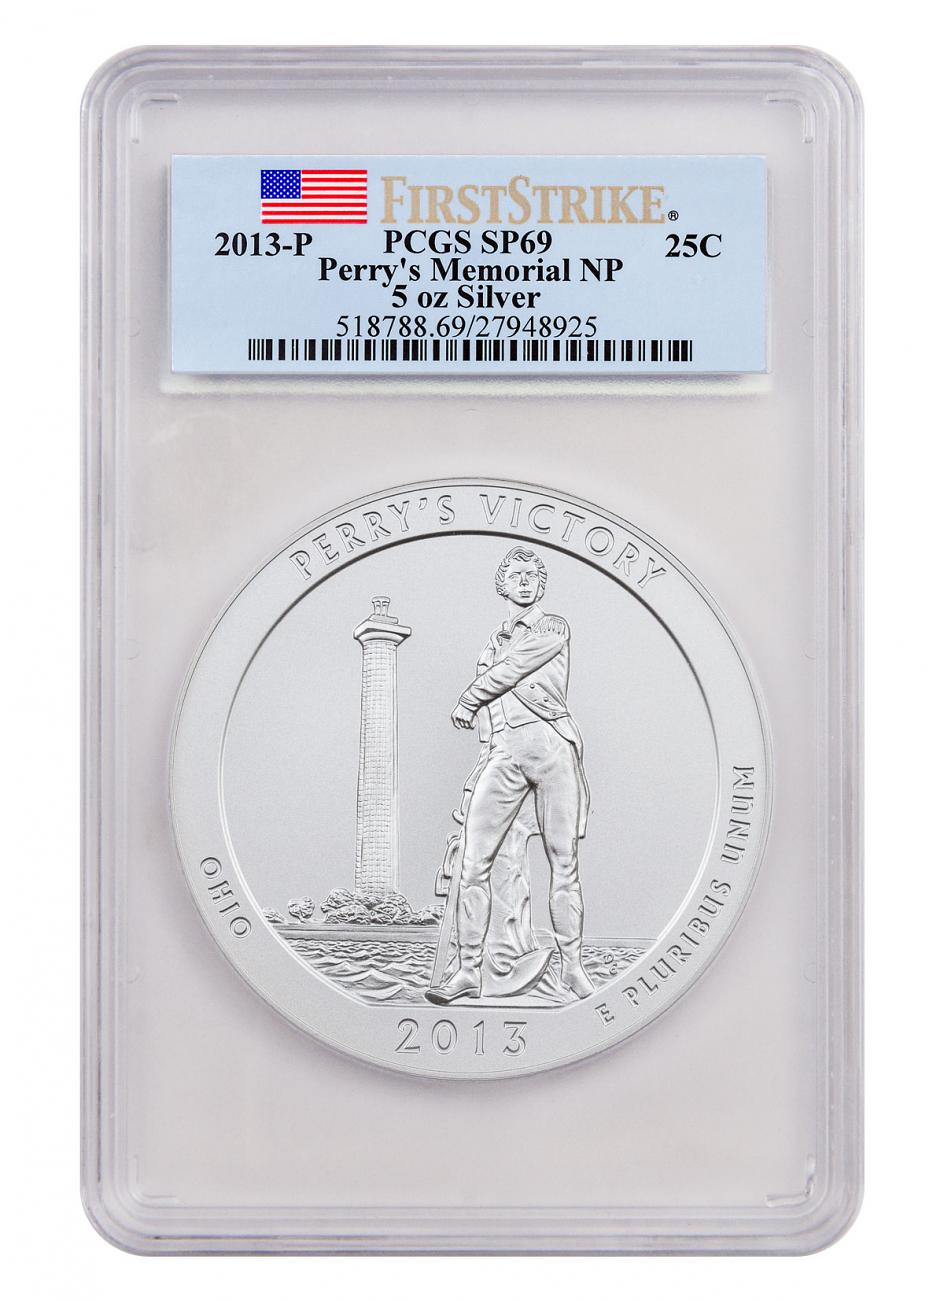 2013-P Perry's Victory 5 oz. Silver America the Beautiful Specimen Coin PCGS SP69 FS Flag Label